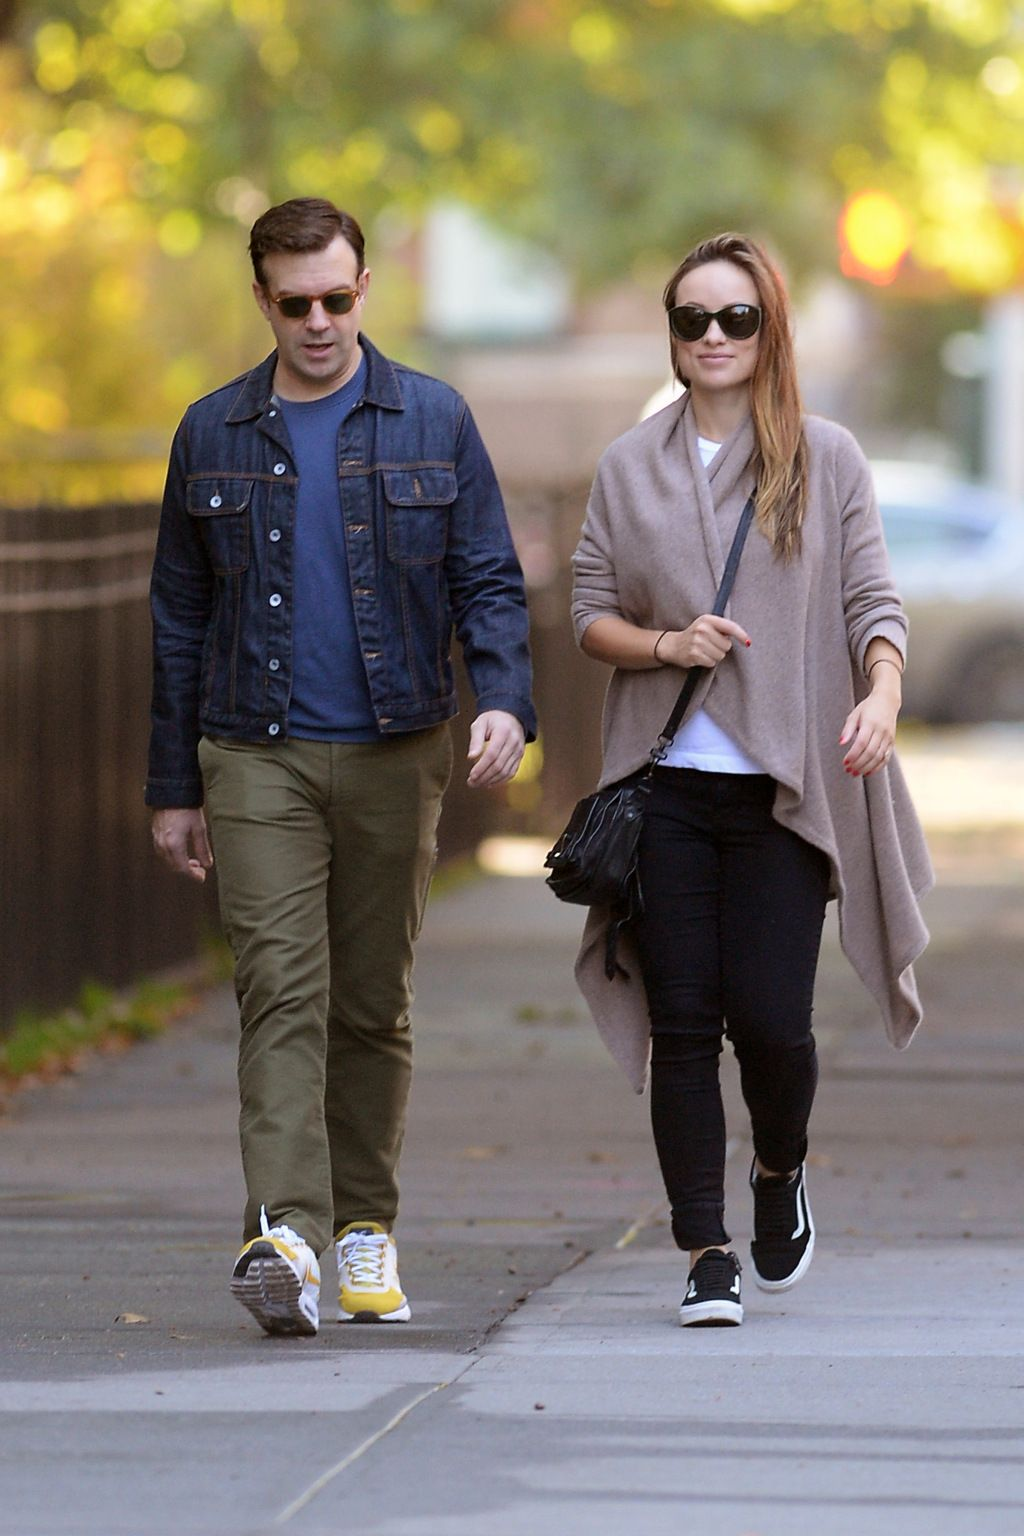 Olivia Wilde And Jason Sudeikis Step Out After Baby Olivia Wilde Jason Sudeikis Stylish Men